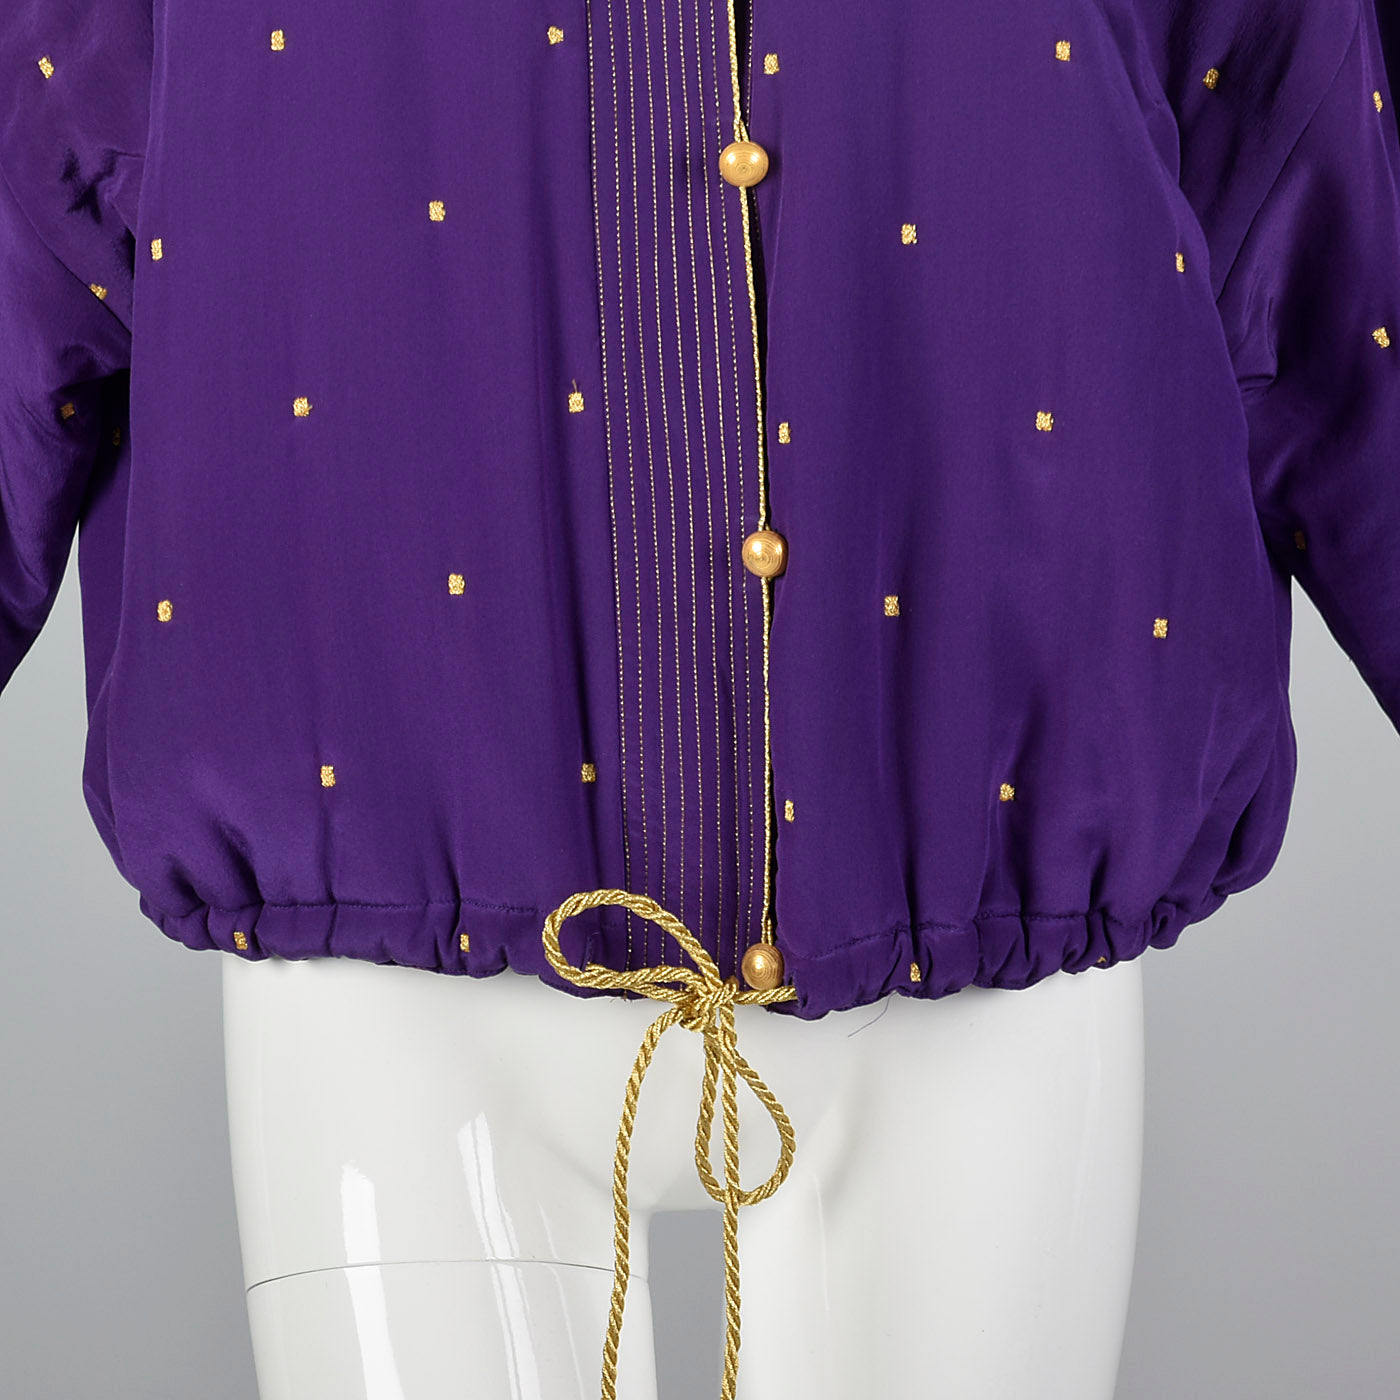 1990s Ellen Tracy Purple Silk Jacket with Metallic Gold Details